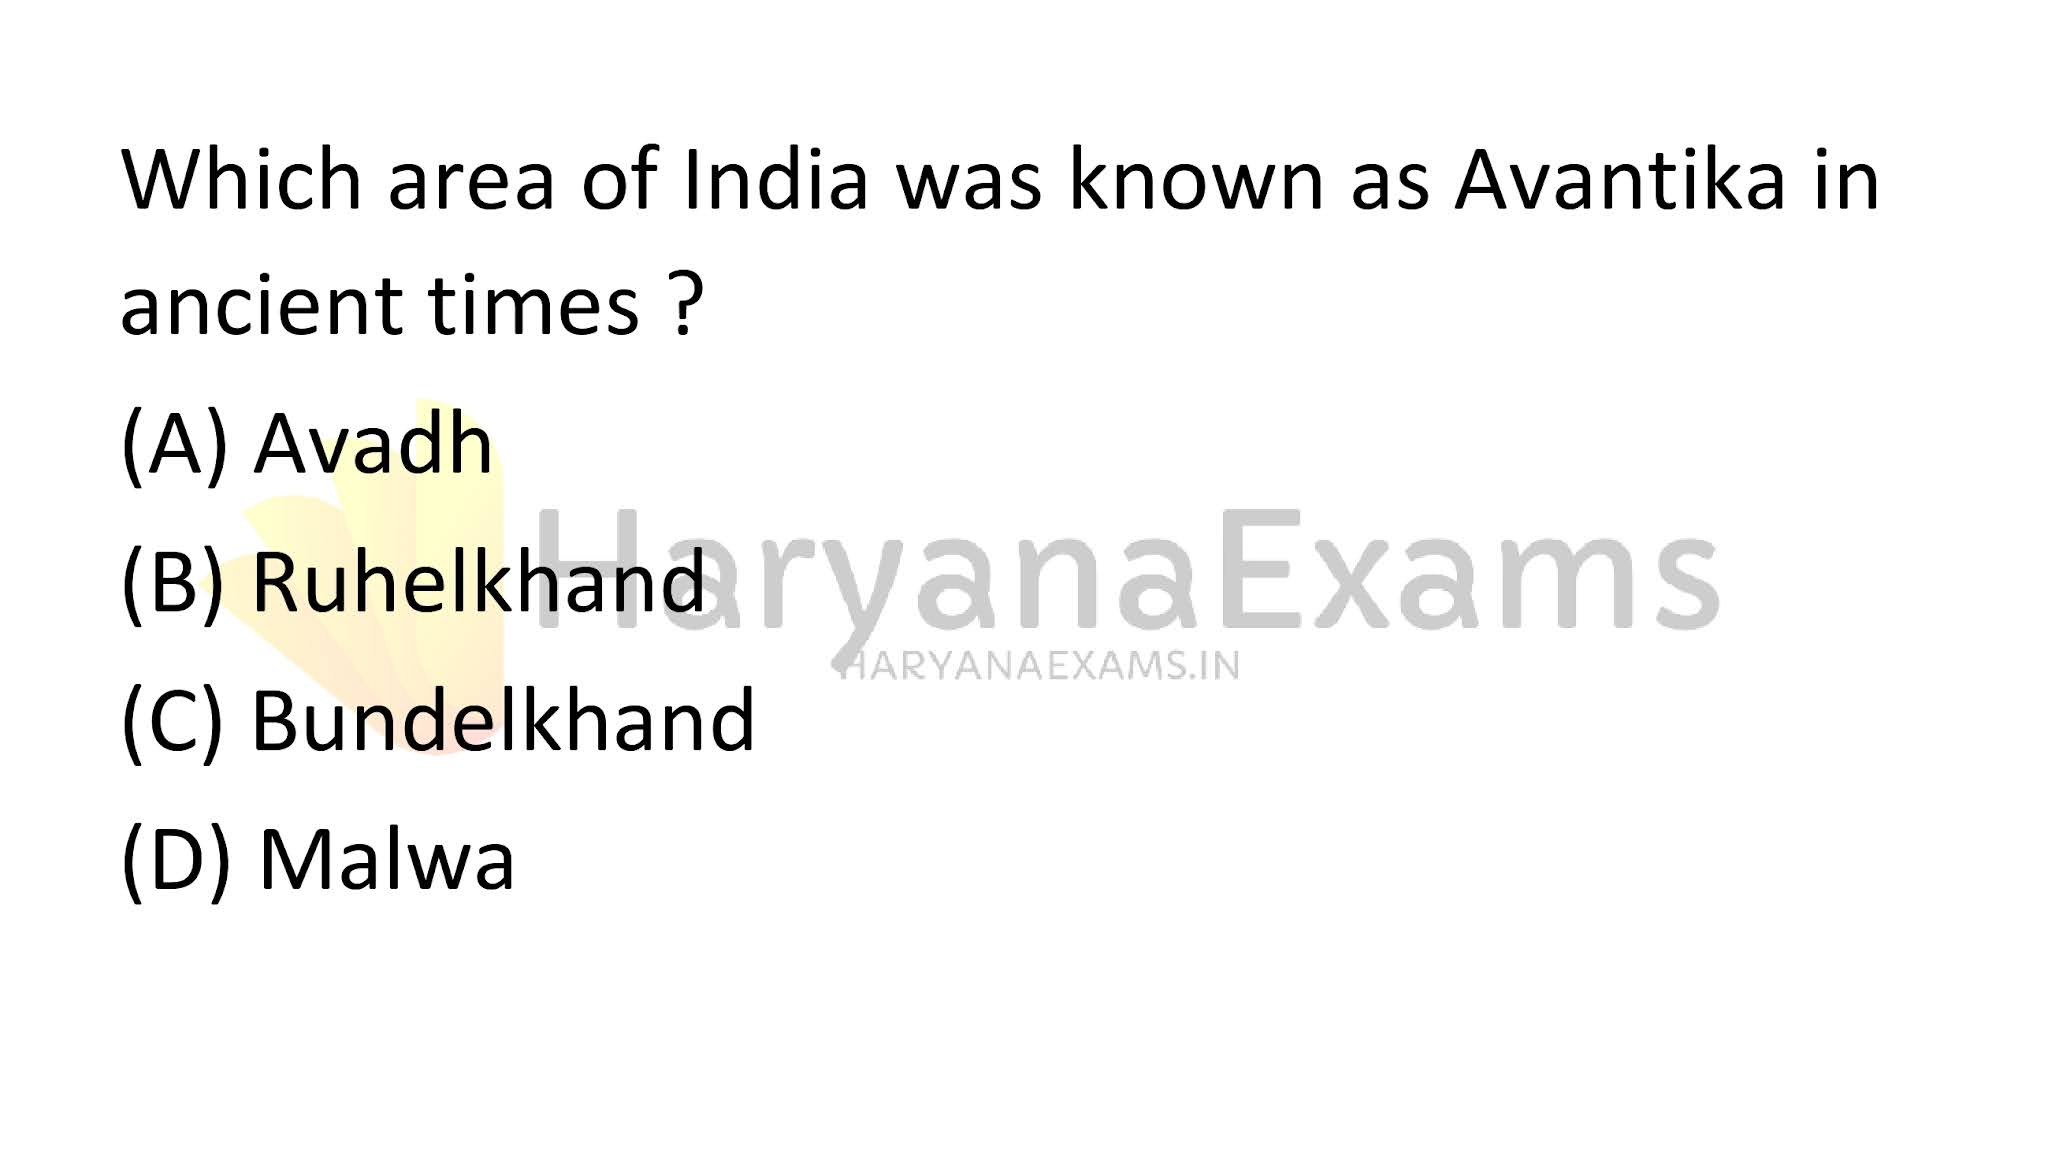 Which area of India was known as Avantika in ancient times?